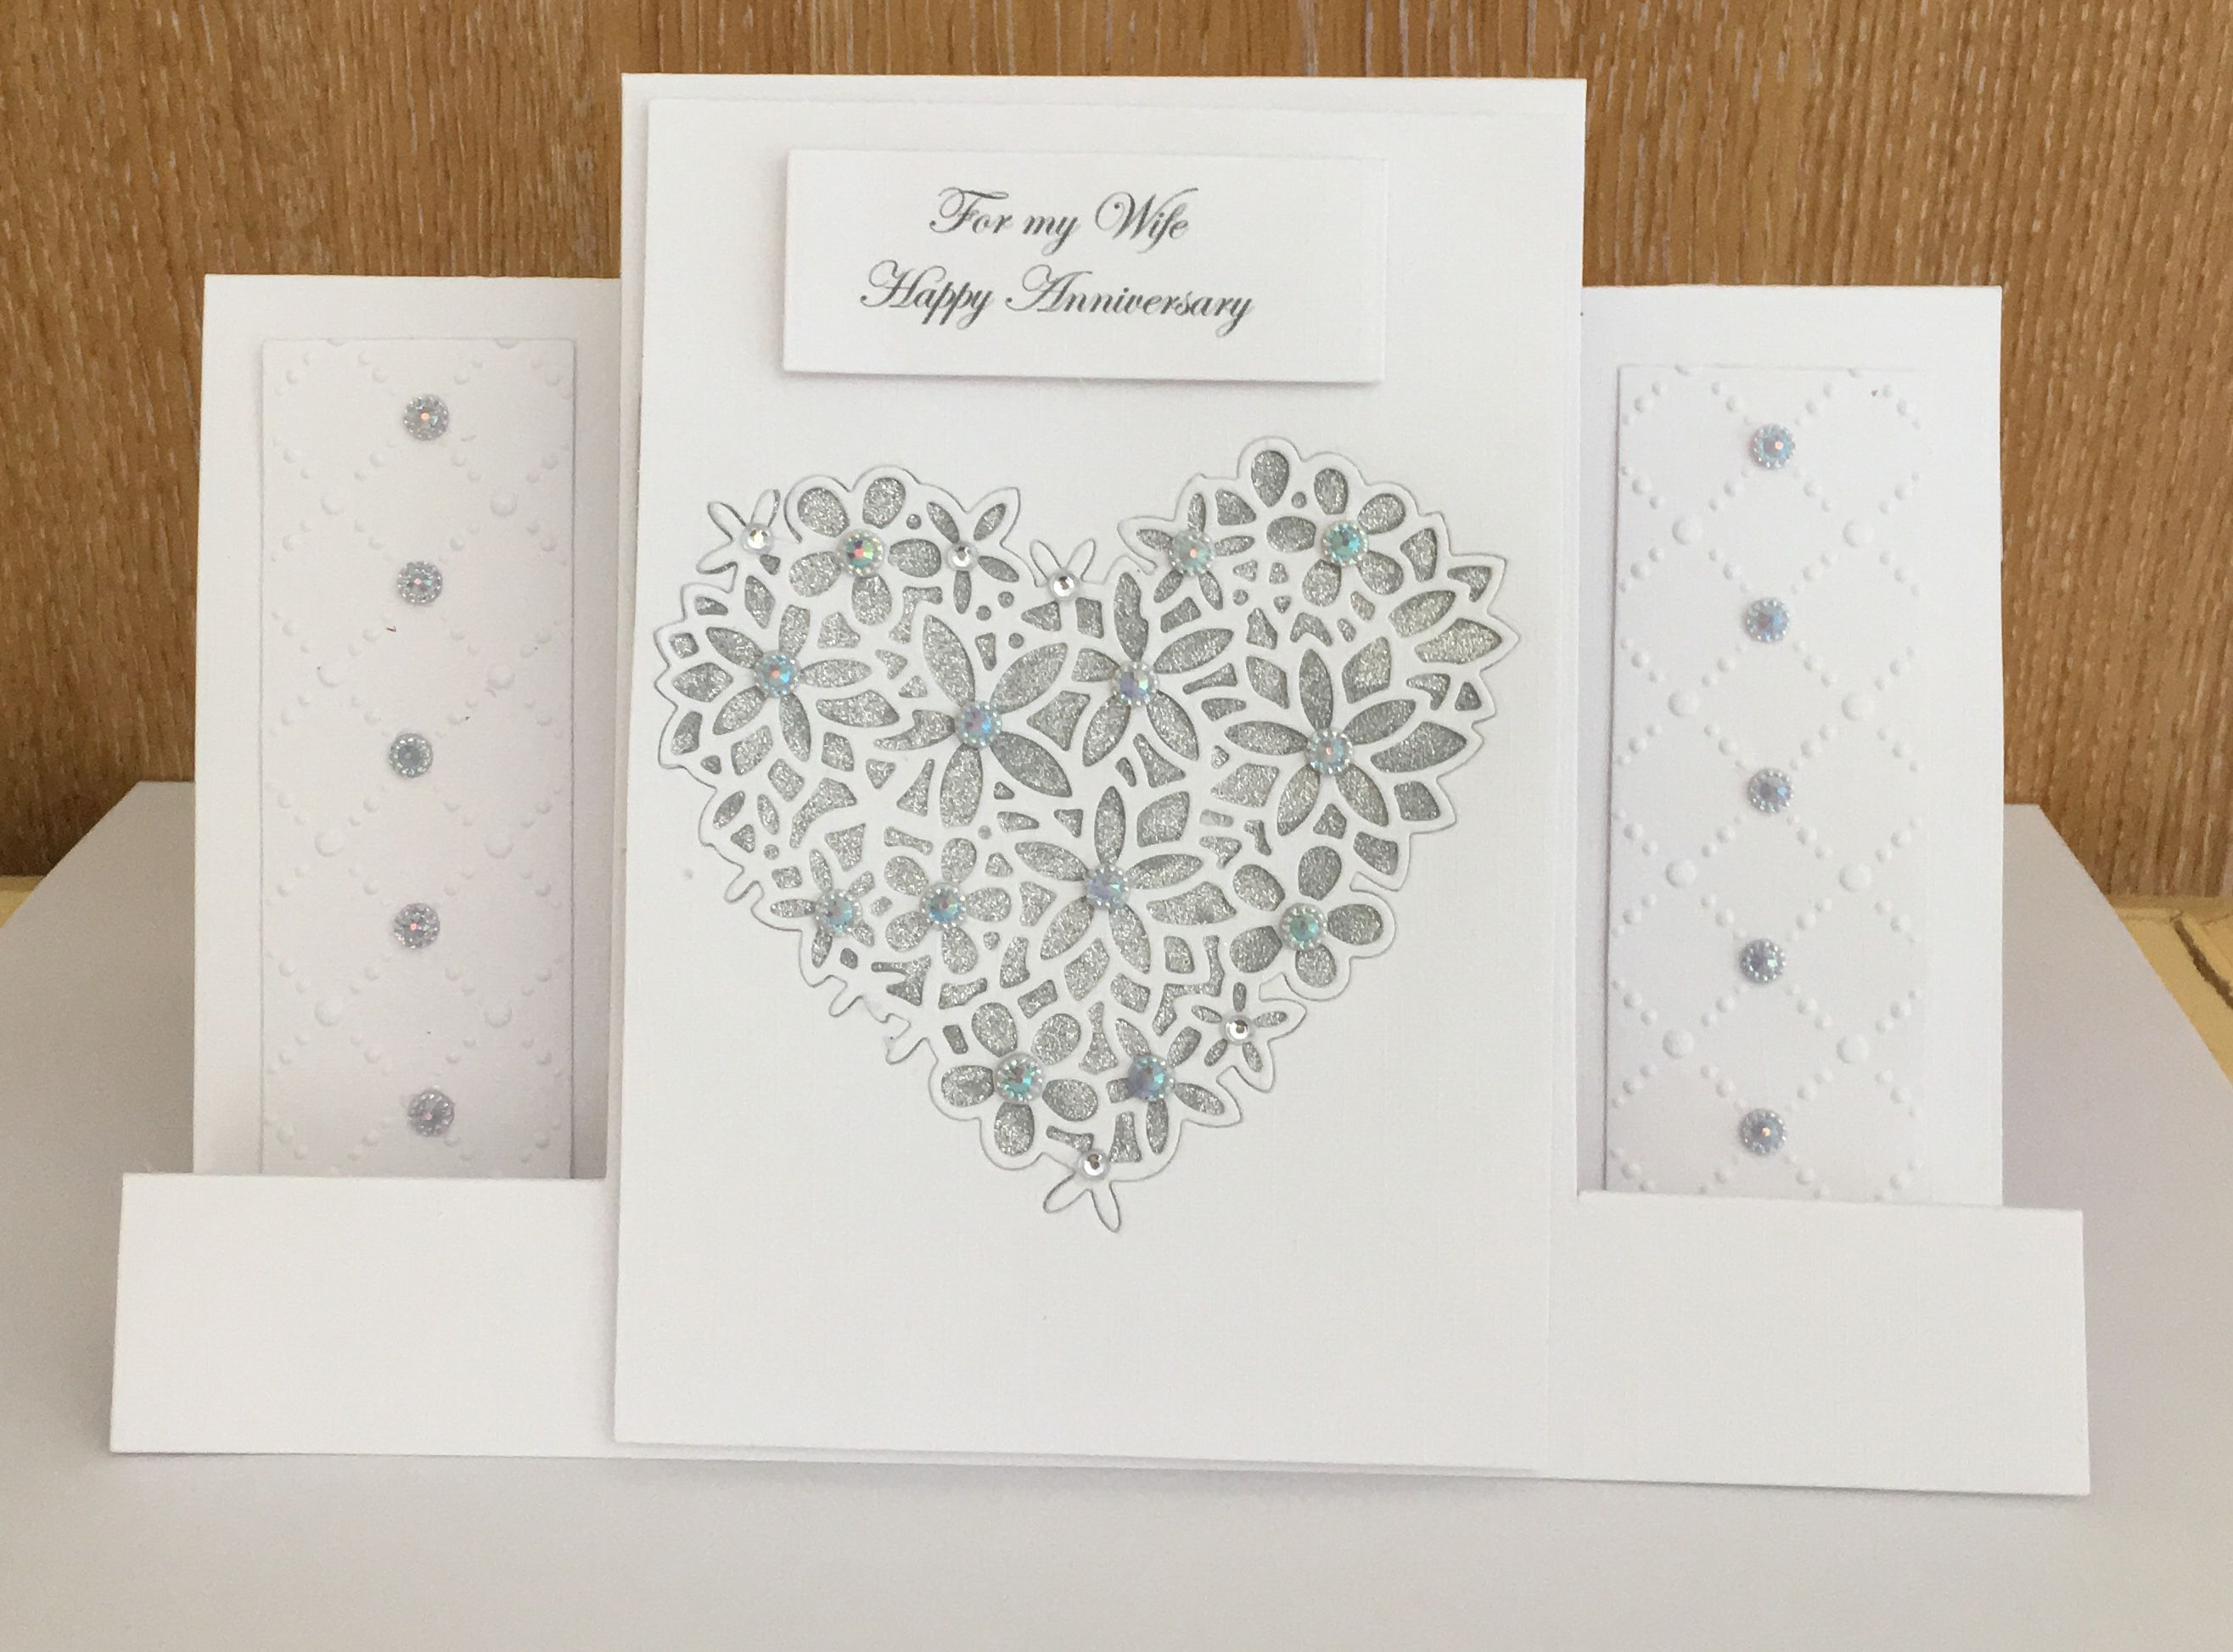 Handmade wedding anniversary stepper card made using tattered lace